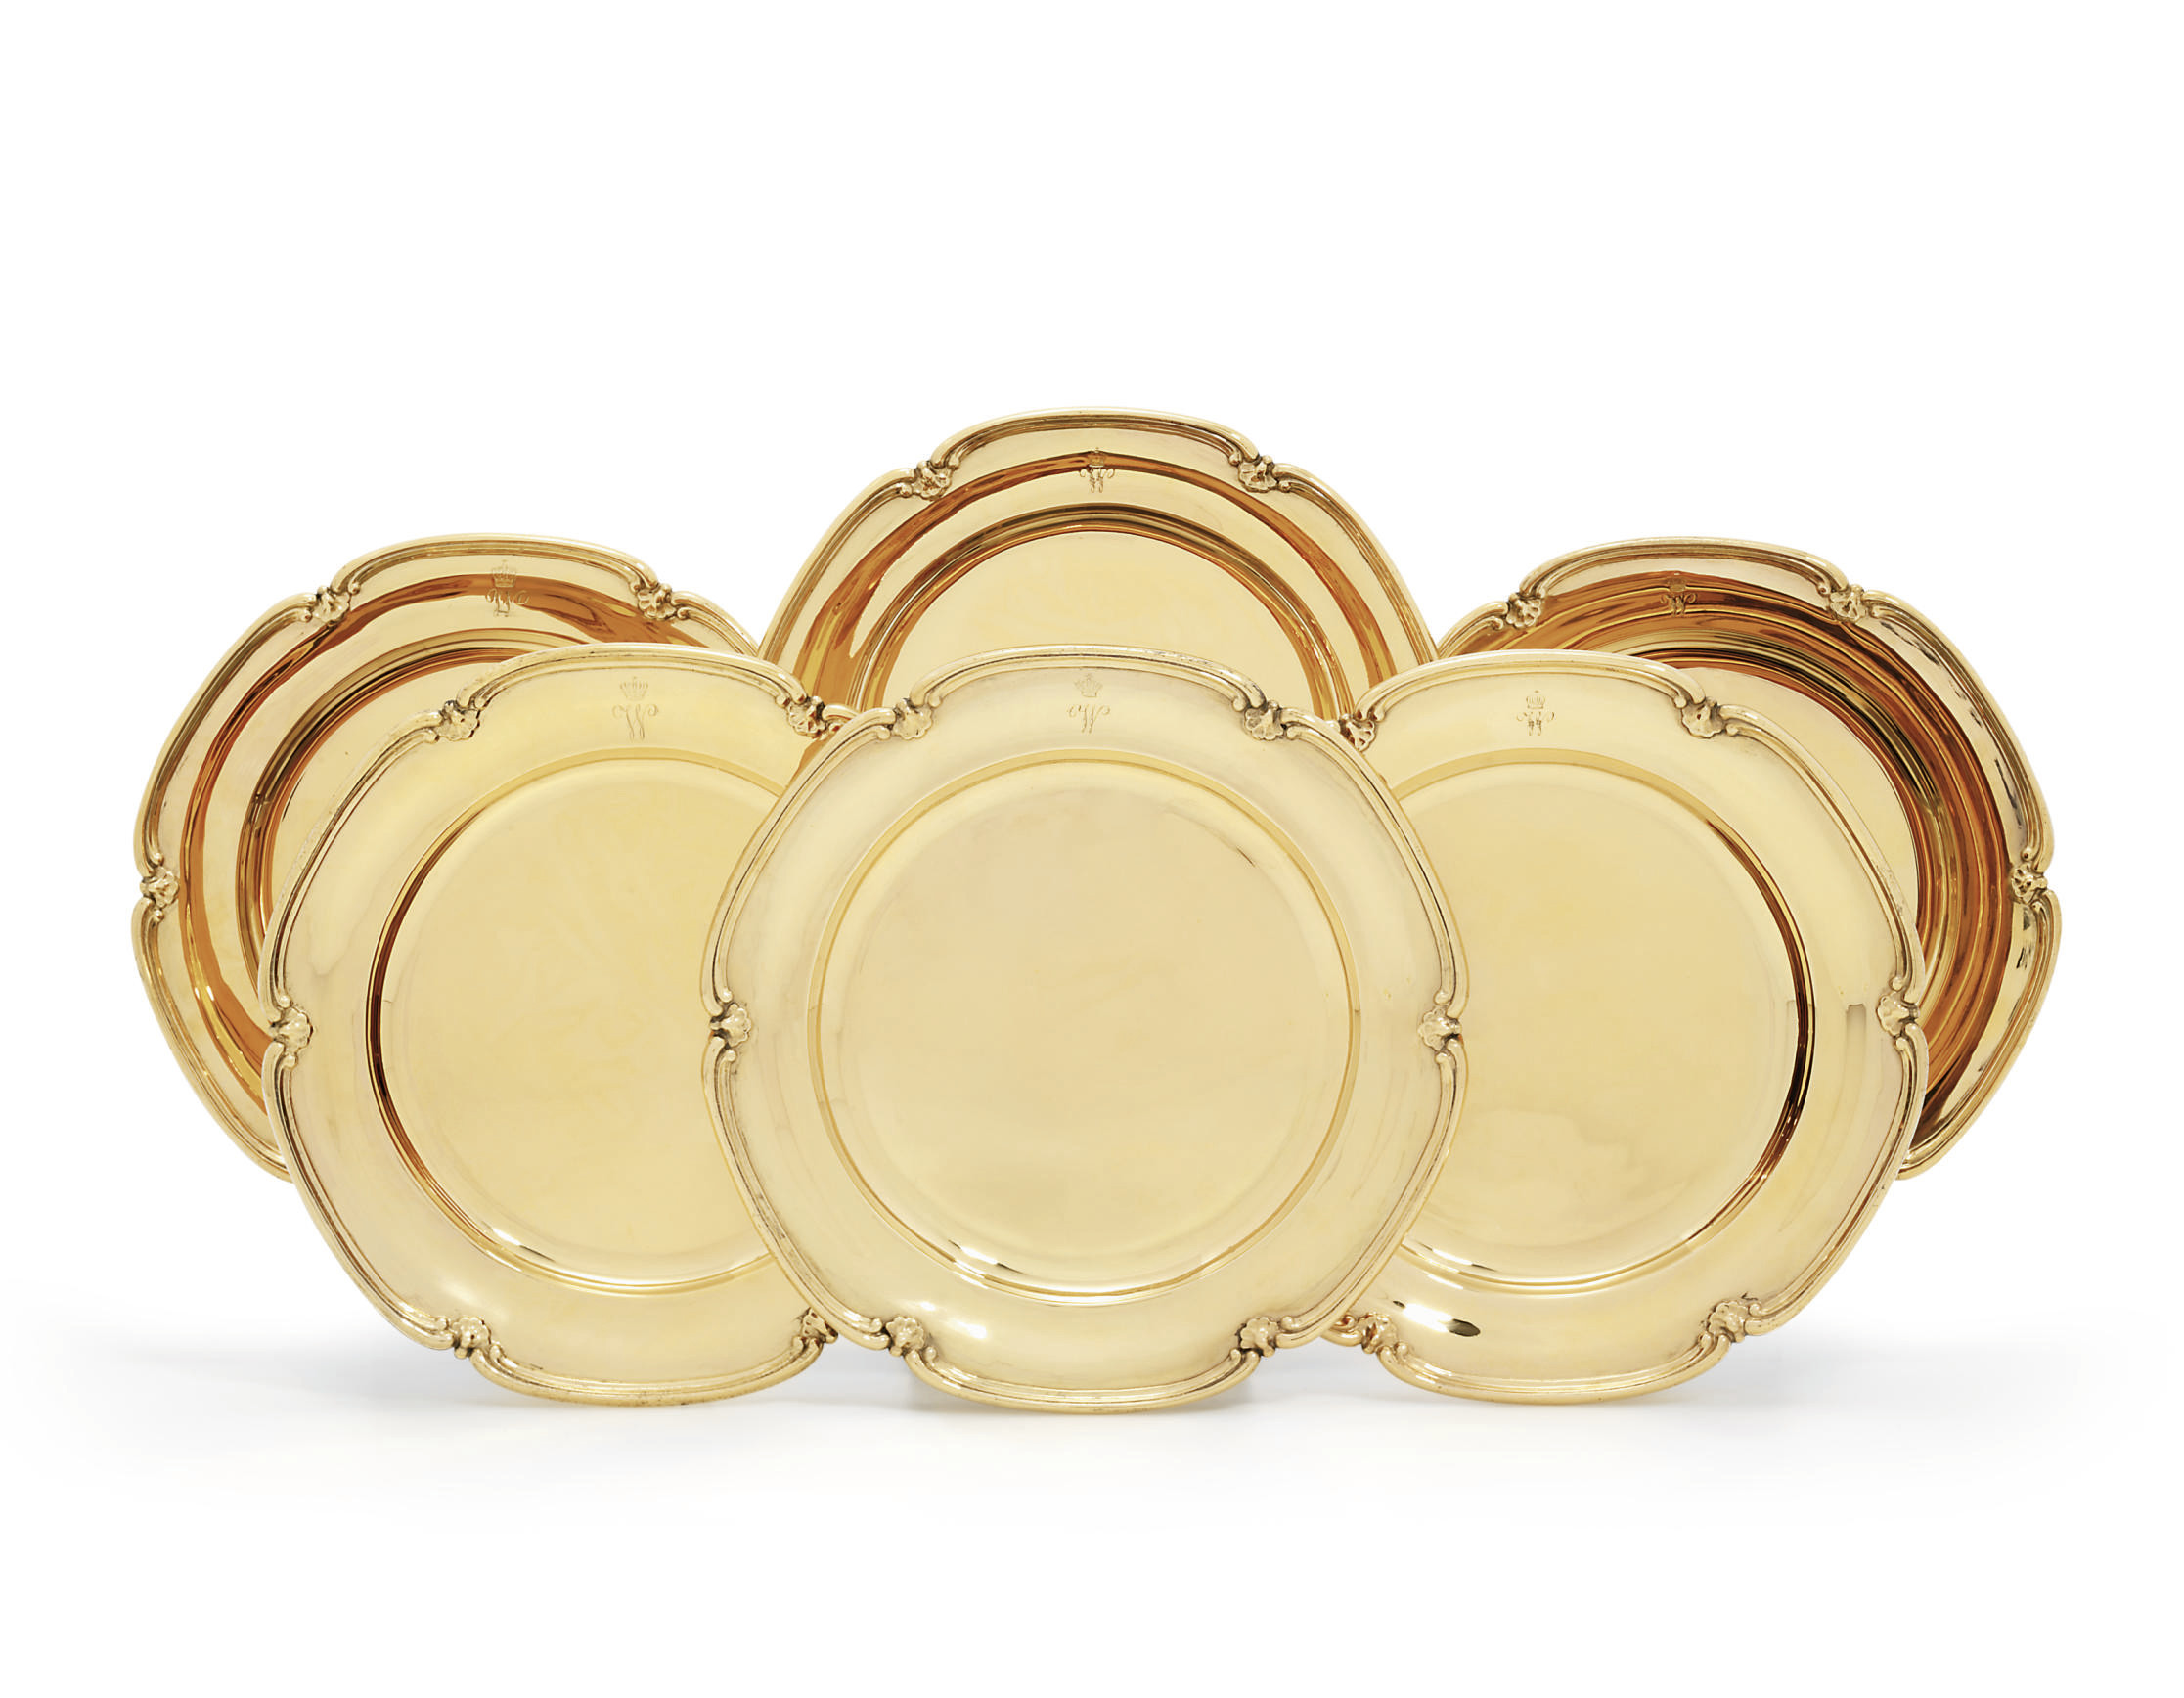 A SET OF SIX GERMAN SILVER-GILT DINNER-PLATES